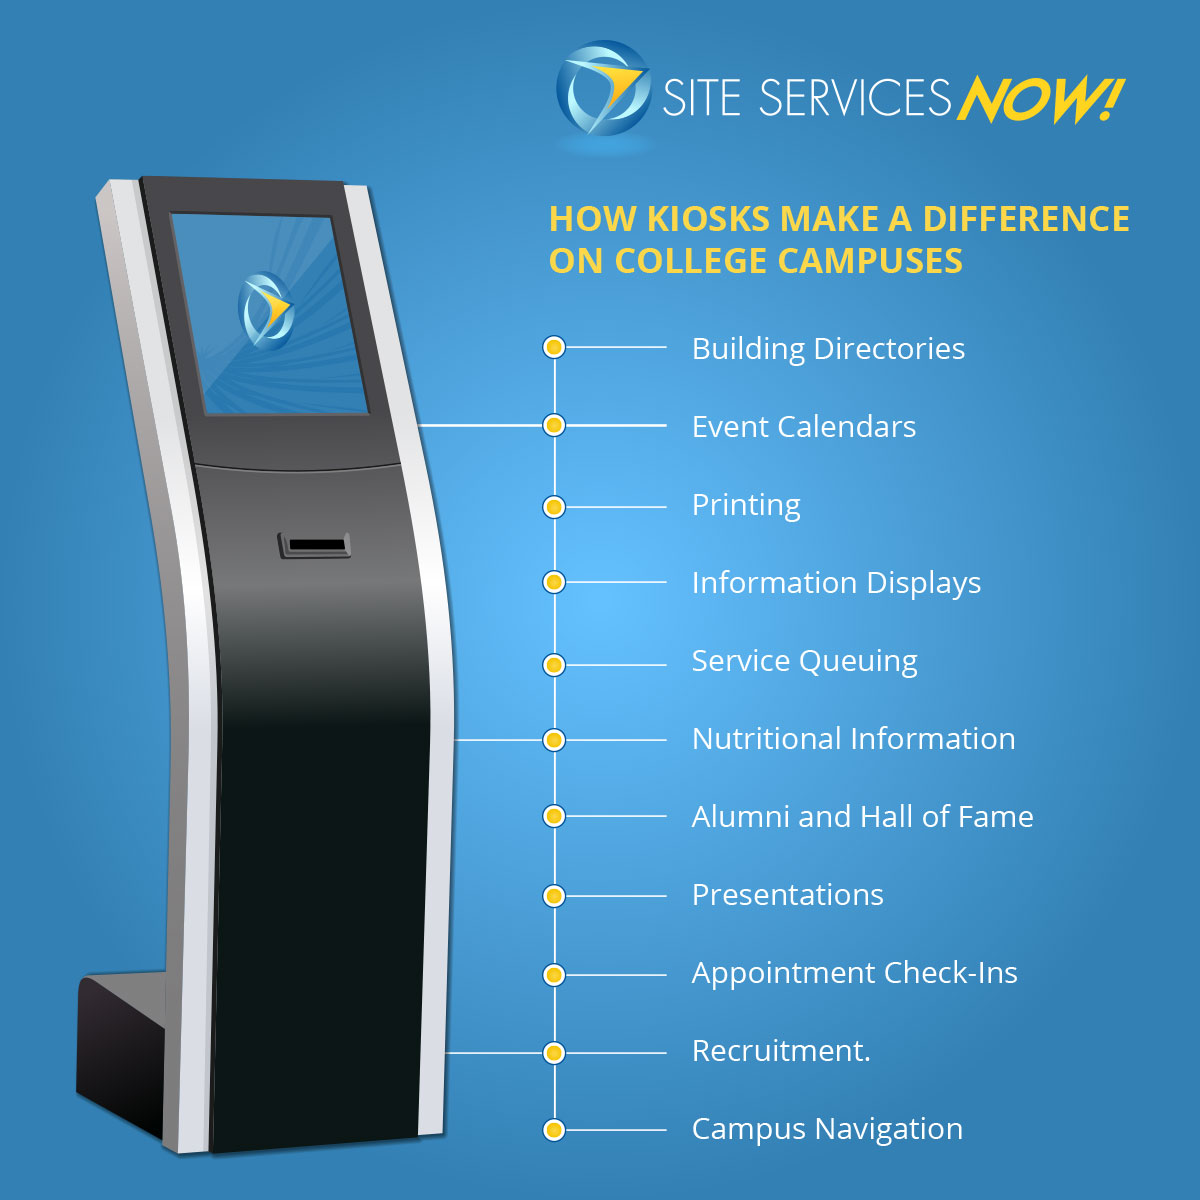 How Kiosks Make a Difference on College Campuses Infographic